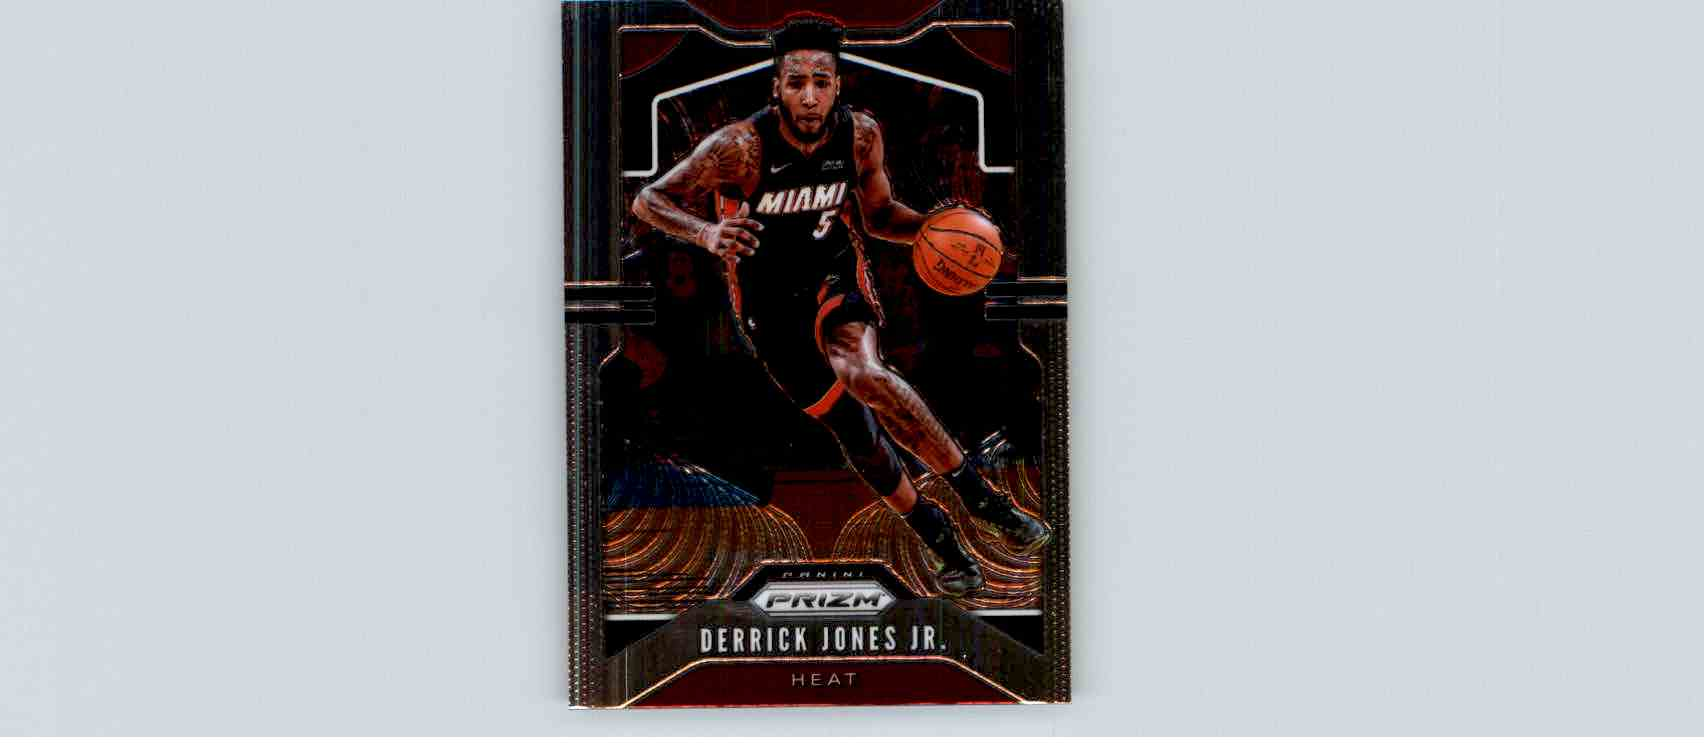 2019-20 Panini Prizm Basketball Prizm Derrick Jones JR. #150 card front image